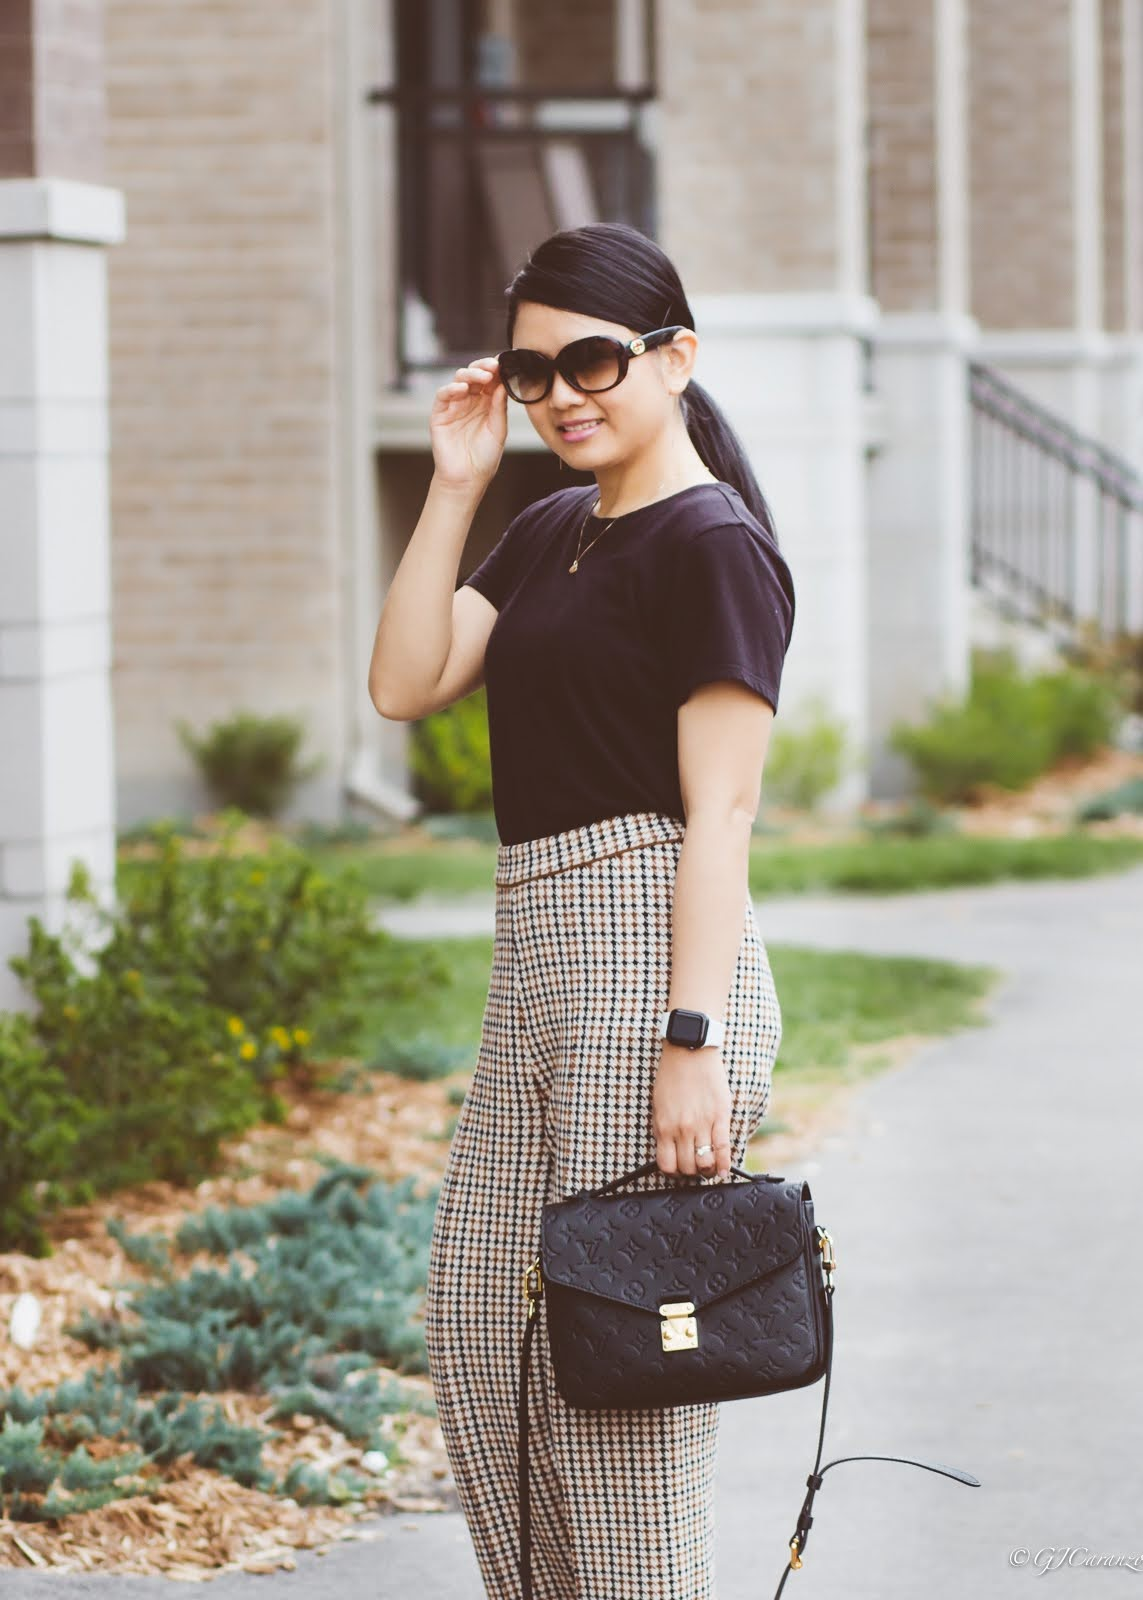 Zara Houndstooth High Waisted Pants | Coach Kailee Mule With Paillettes | Gucci Sunglasses | Louis Vuitton Pochette Metis in Black Empreinte Leather | Petite Fashion